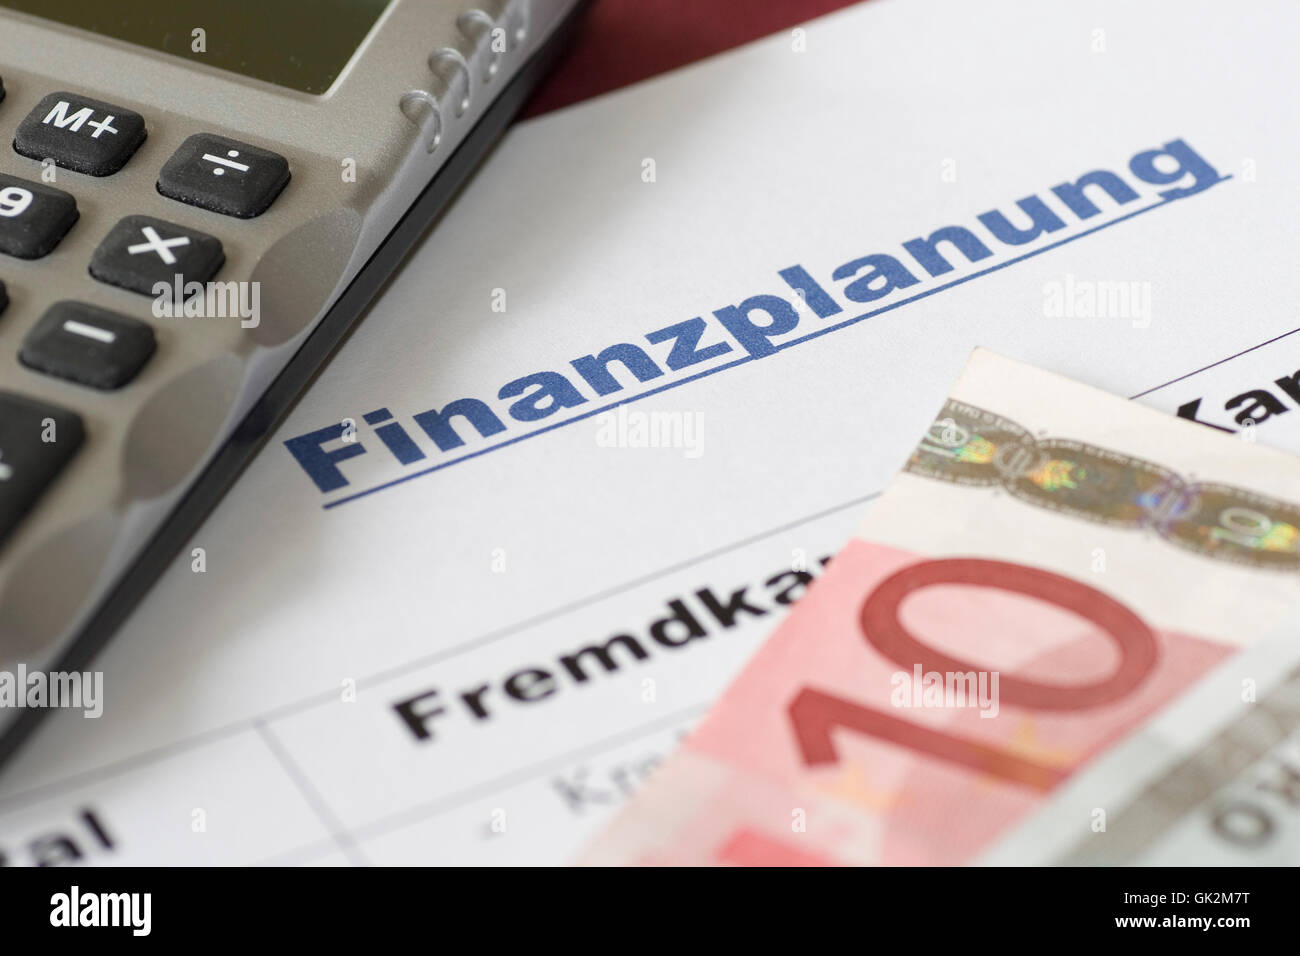 budgetary accounting independent funds - Stock Image